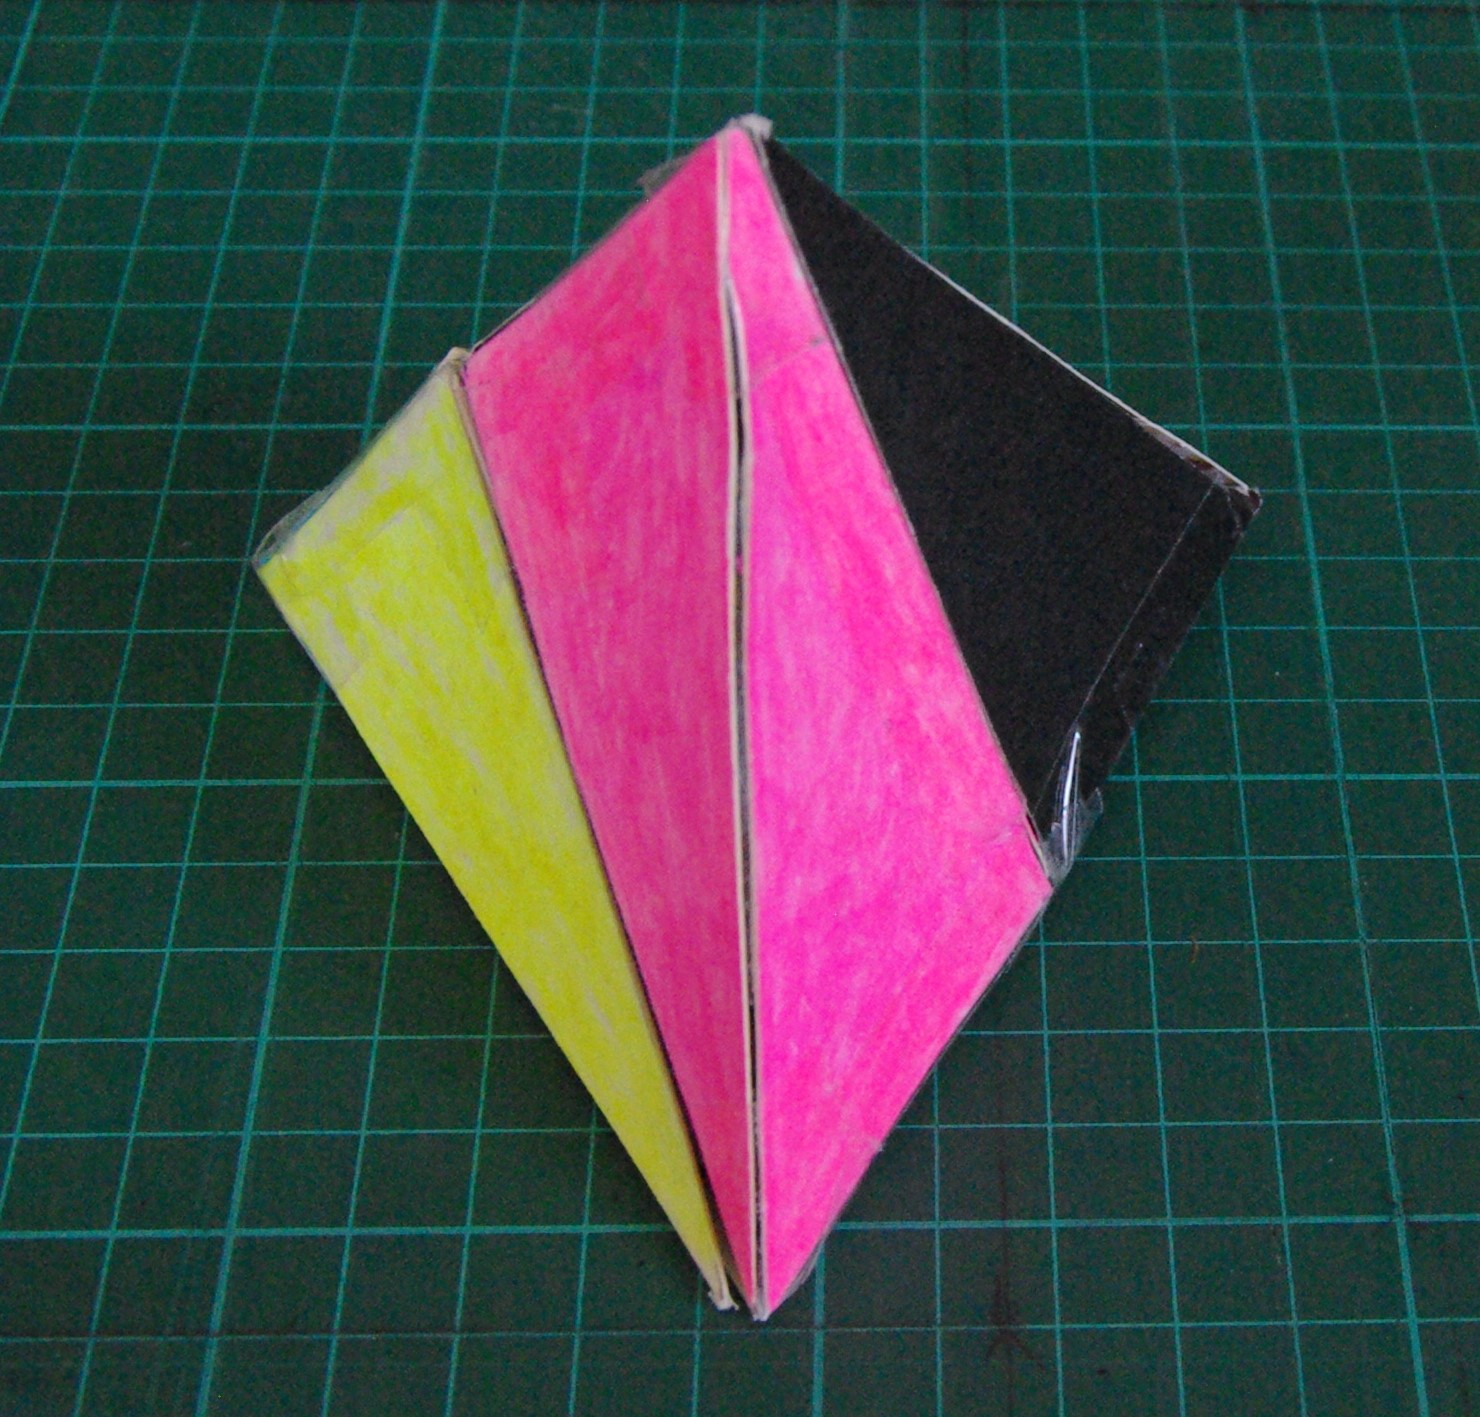 Picture of Construct a Regular Tetrahedron From Two Pairs of Congruent Non-regular Tetrahedra Which Are Mirror Images of Each Other